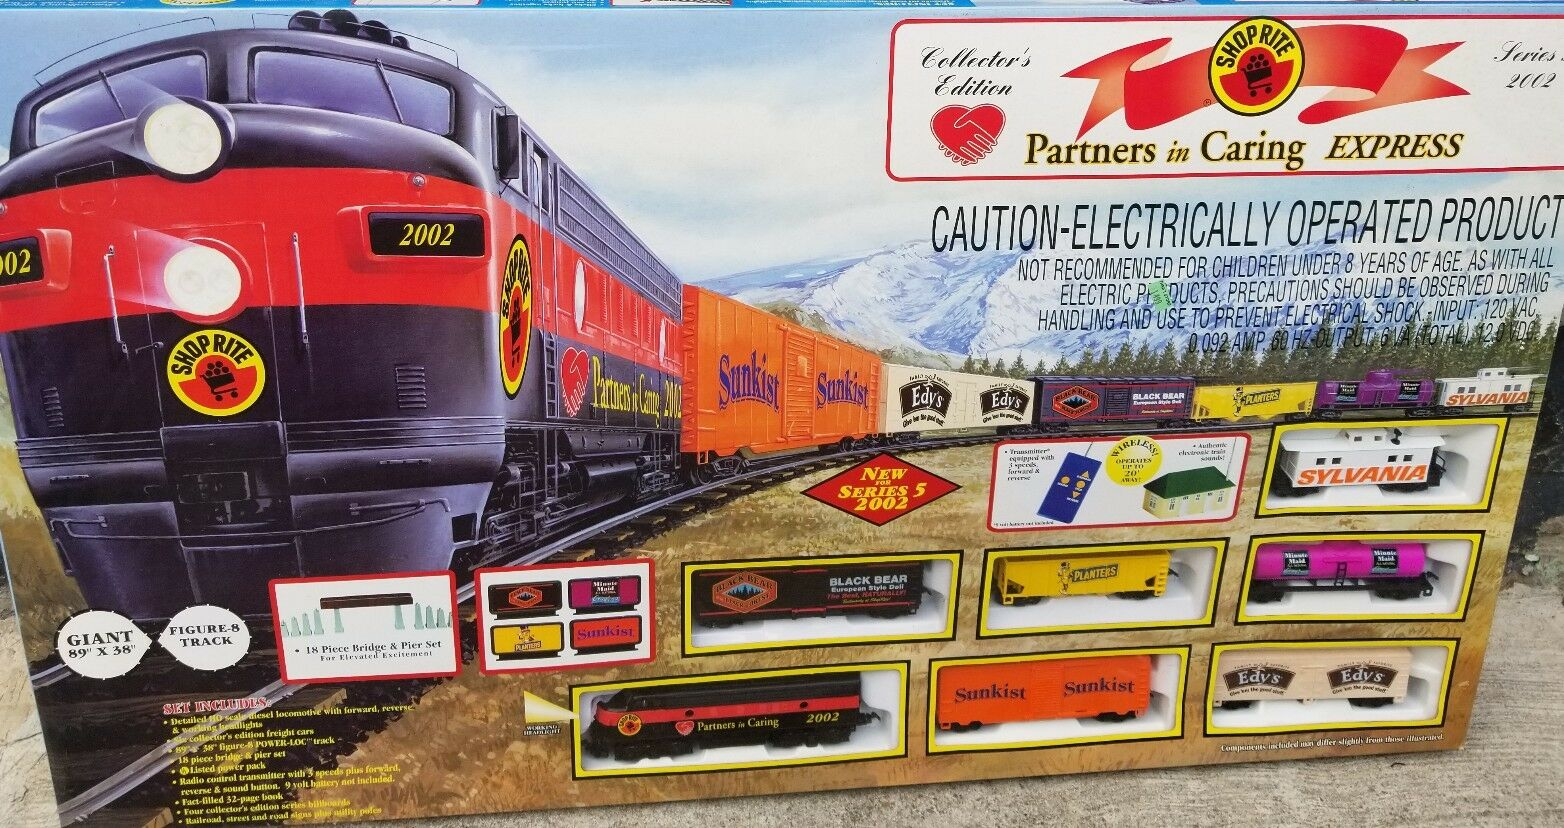 NEW ELECTRIC TRAIN SET HO SCALE SHOP RITE PARTNER'S IN CARING EXPRESS 2002